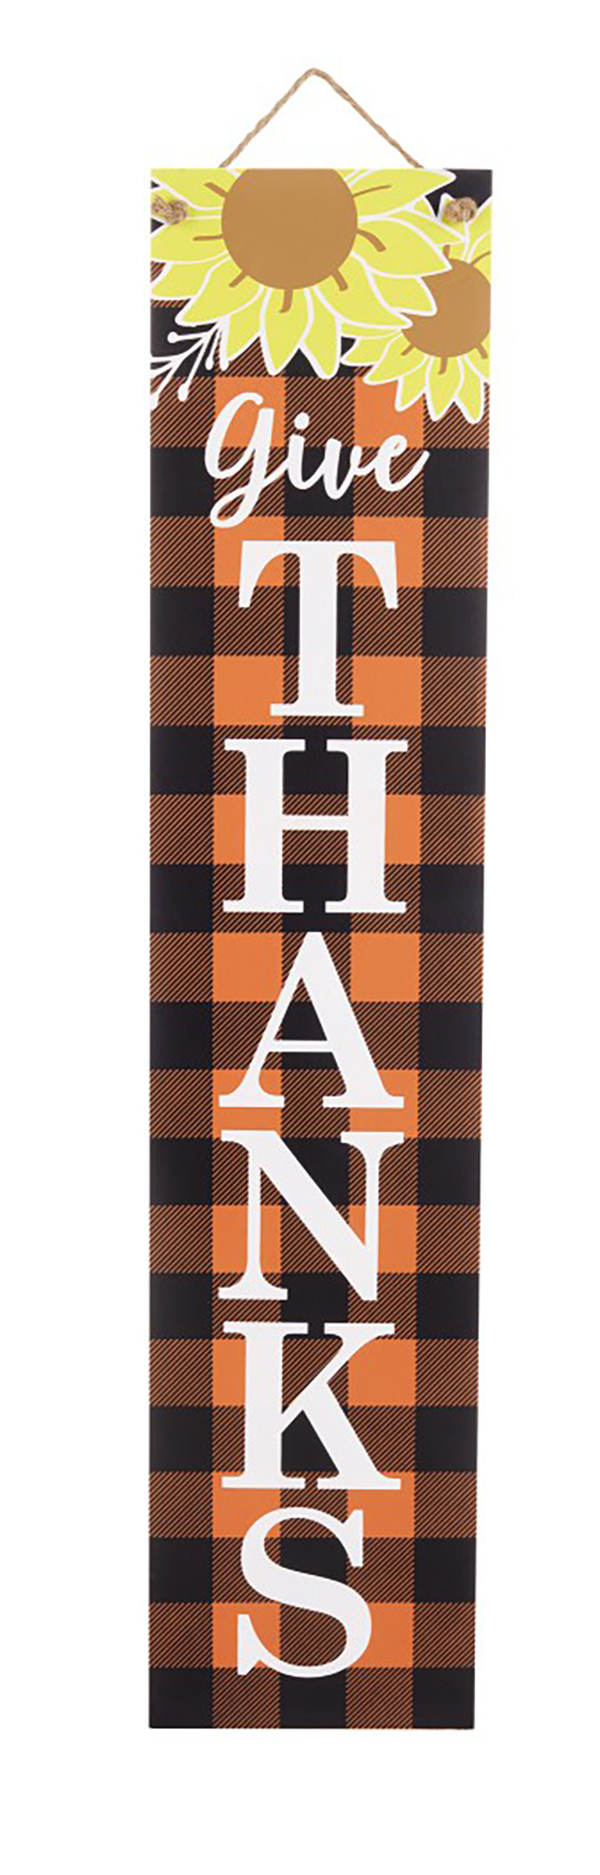 Aldi Fall Reversible Porch Sign give thanks